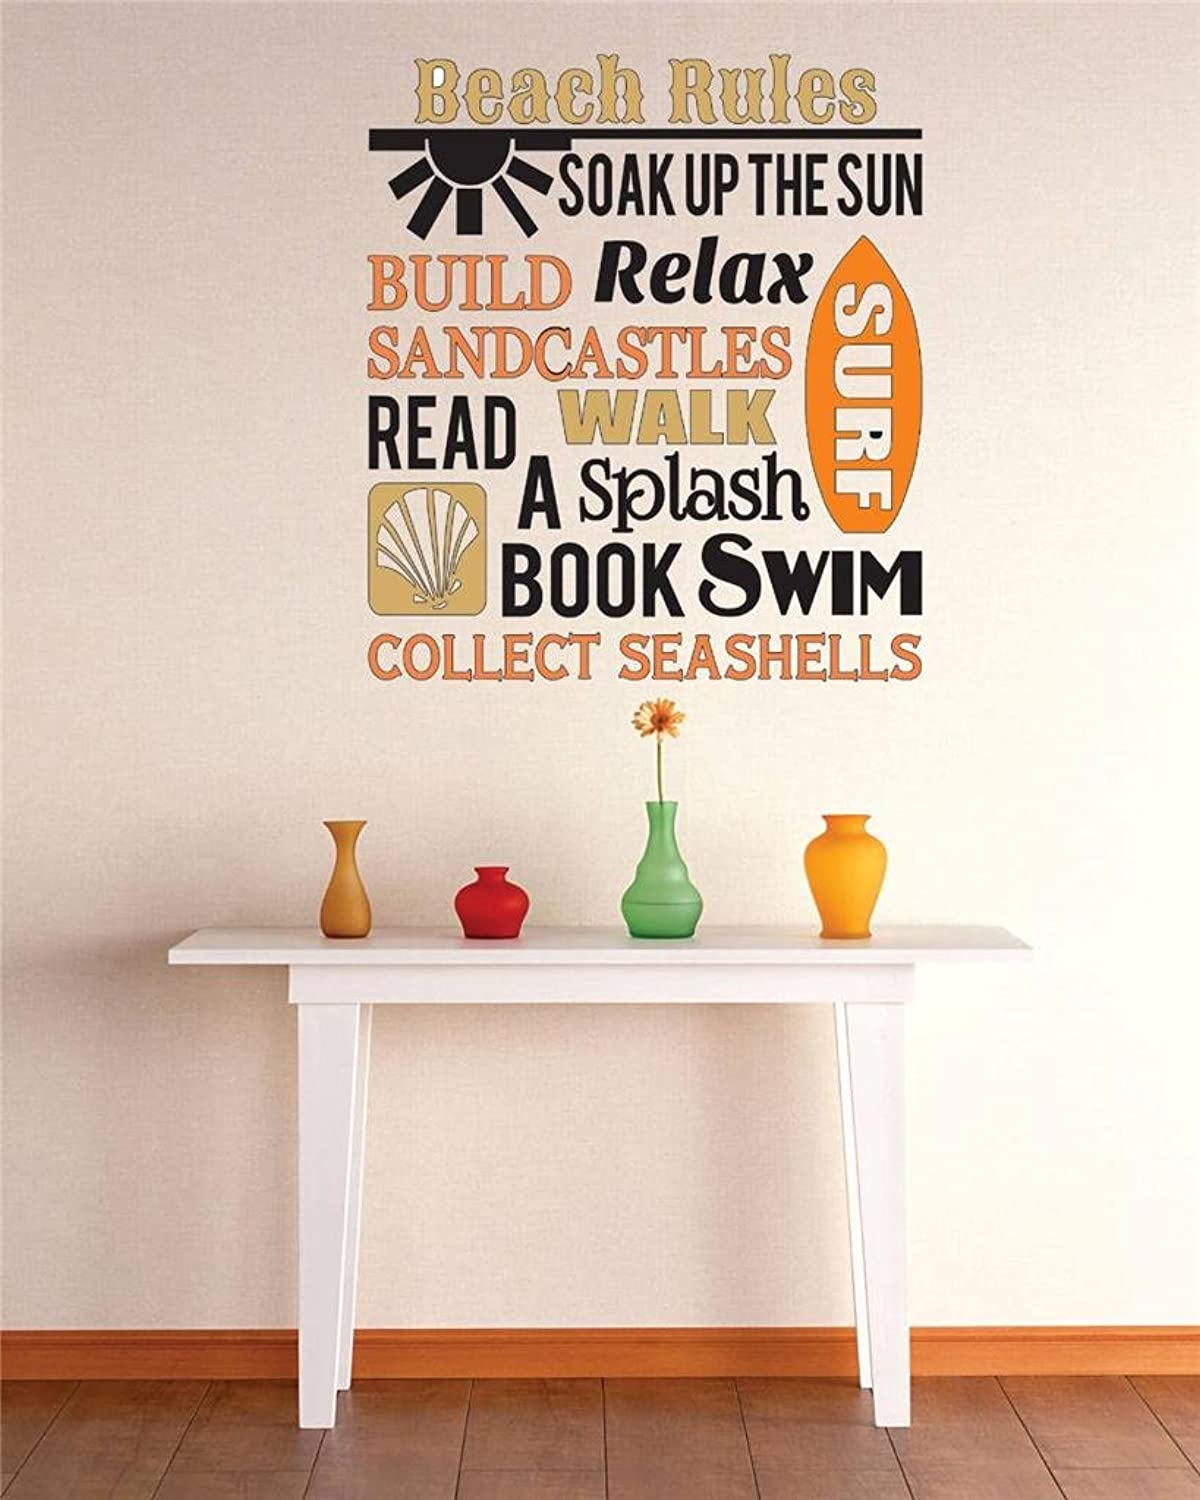 Vinyl Wall Decal Sticker   Beach Rules Soak Up The Sun Relax Surf Swim Build Sandcastles Collect Sea Shells Quote Bedroom Bathroom Living Room Picture Art Peel & Stick Mural Size  30 Inches X 46 Inches  22 colors Available